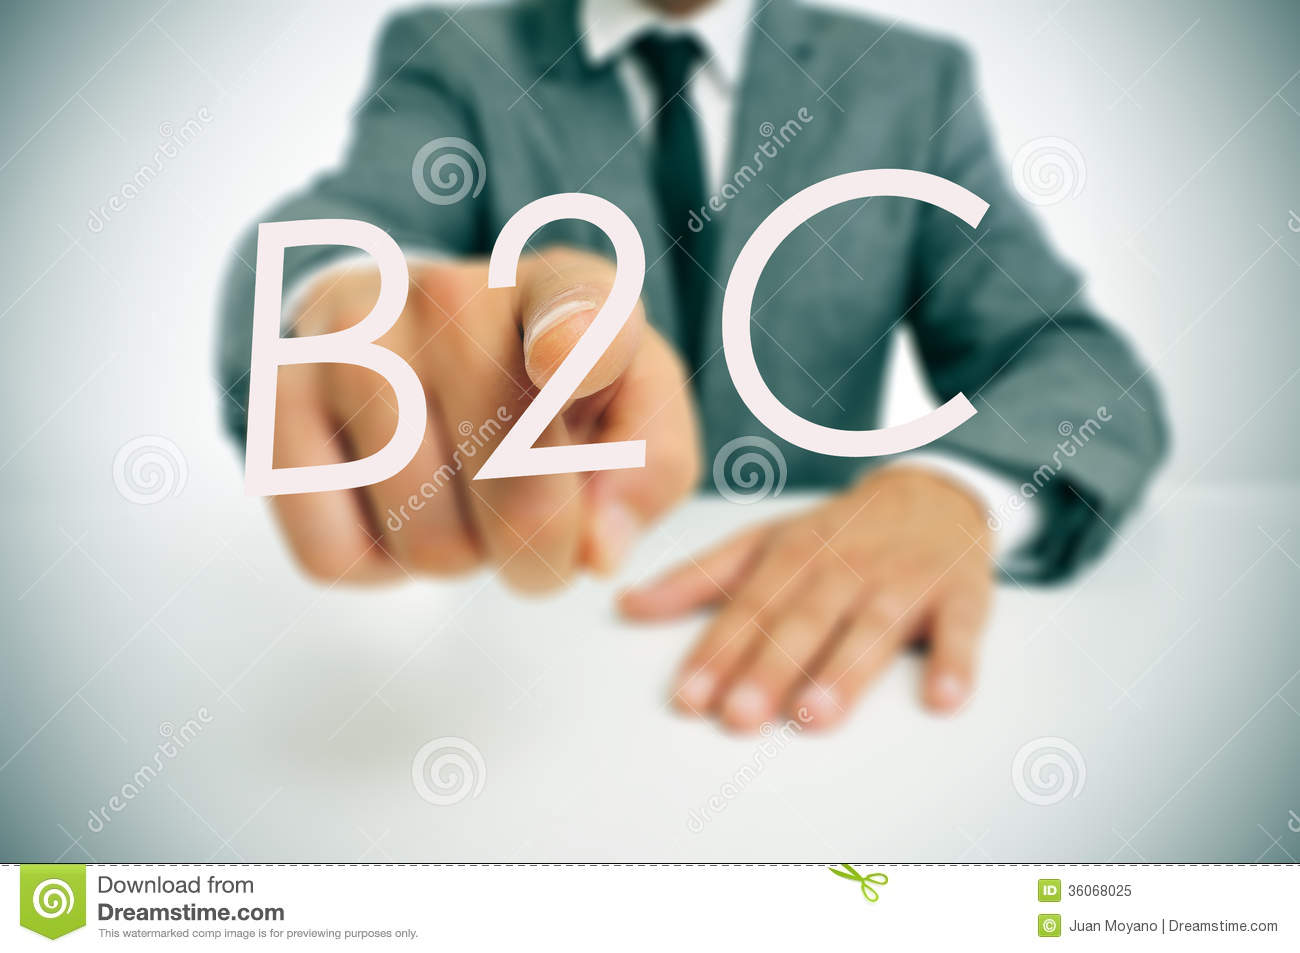 B2c Business To Consumer Stock Image Image Of Enterprise 36068025